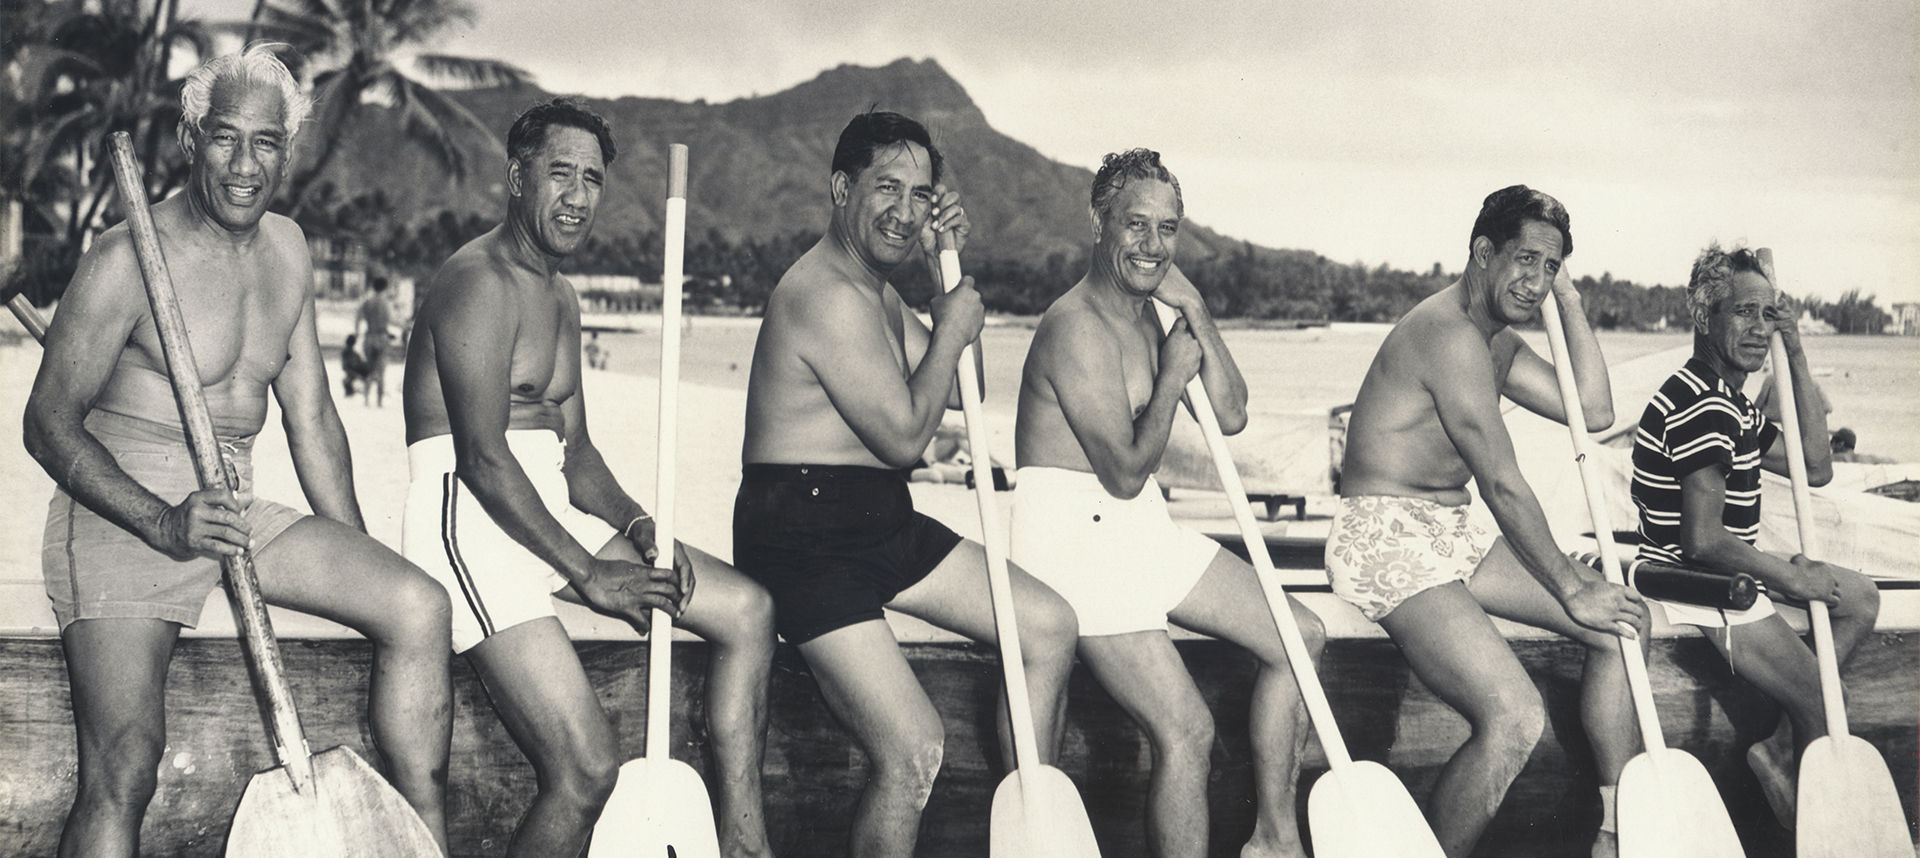 Duke and men with oars